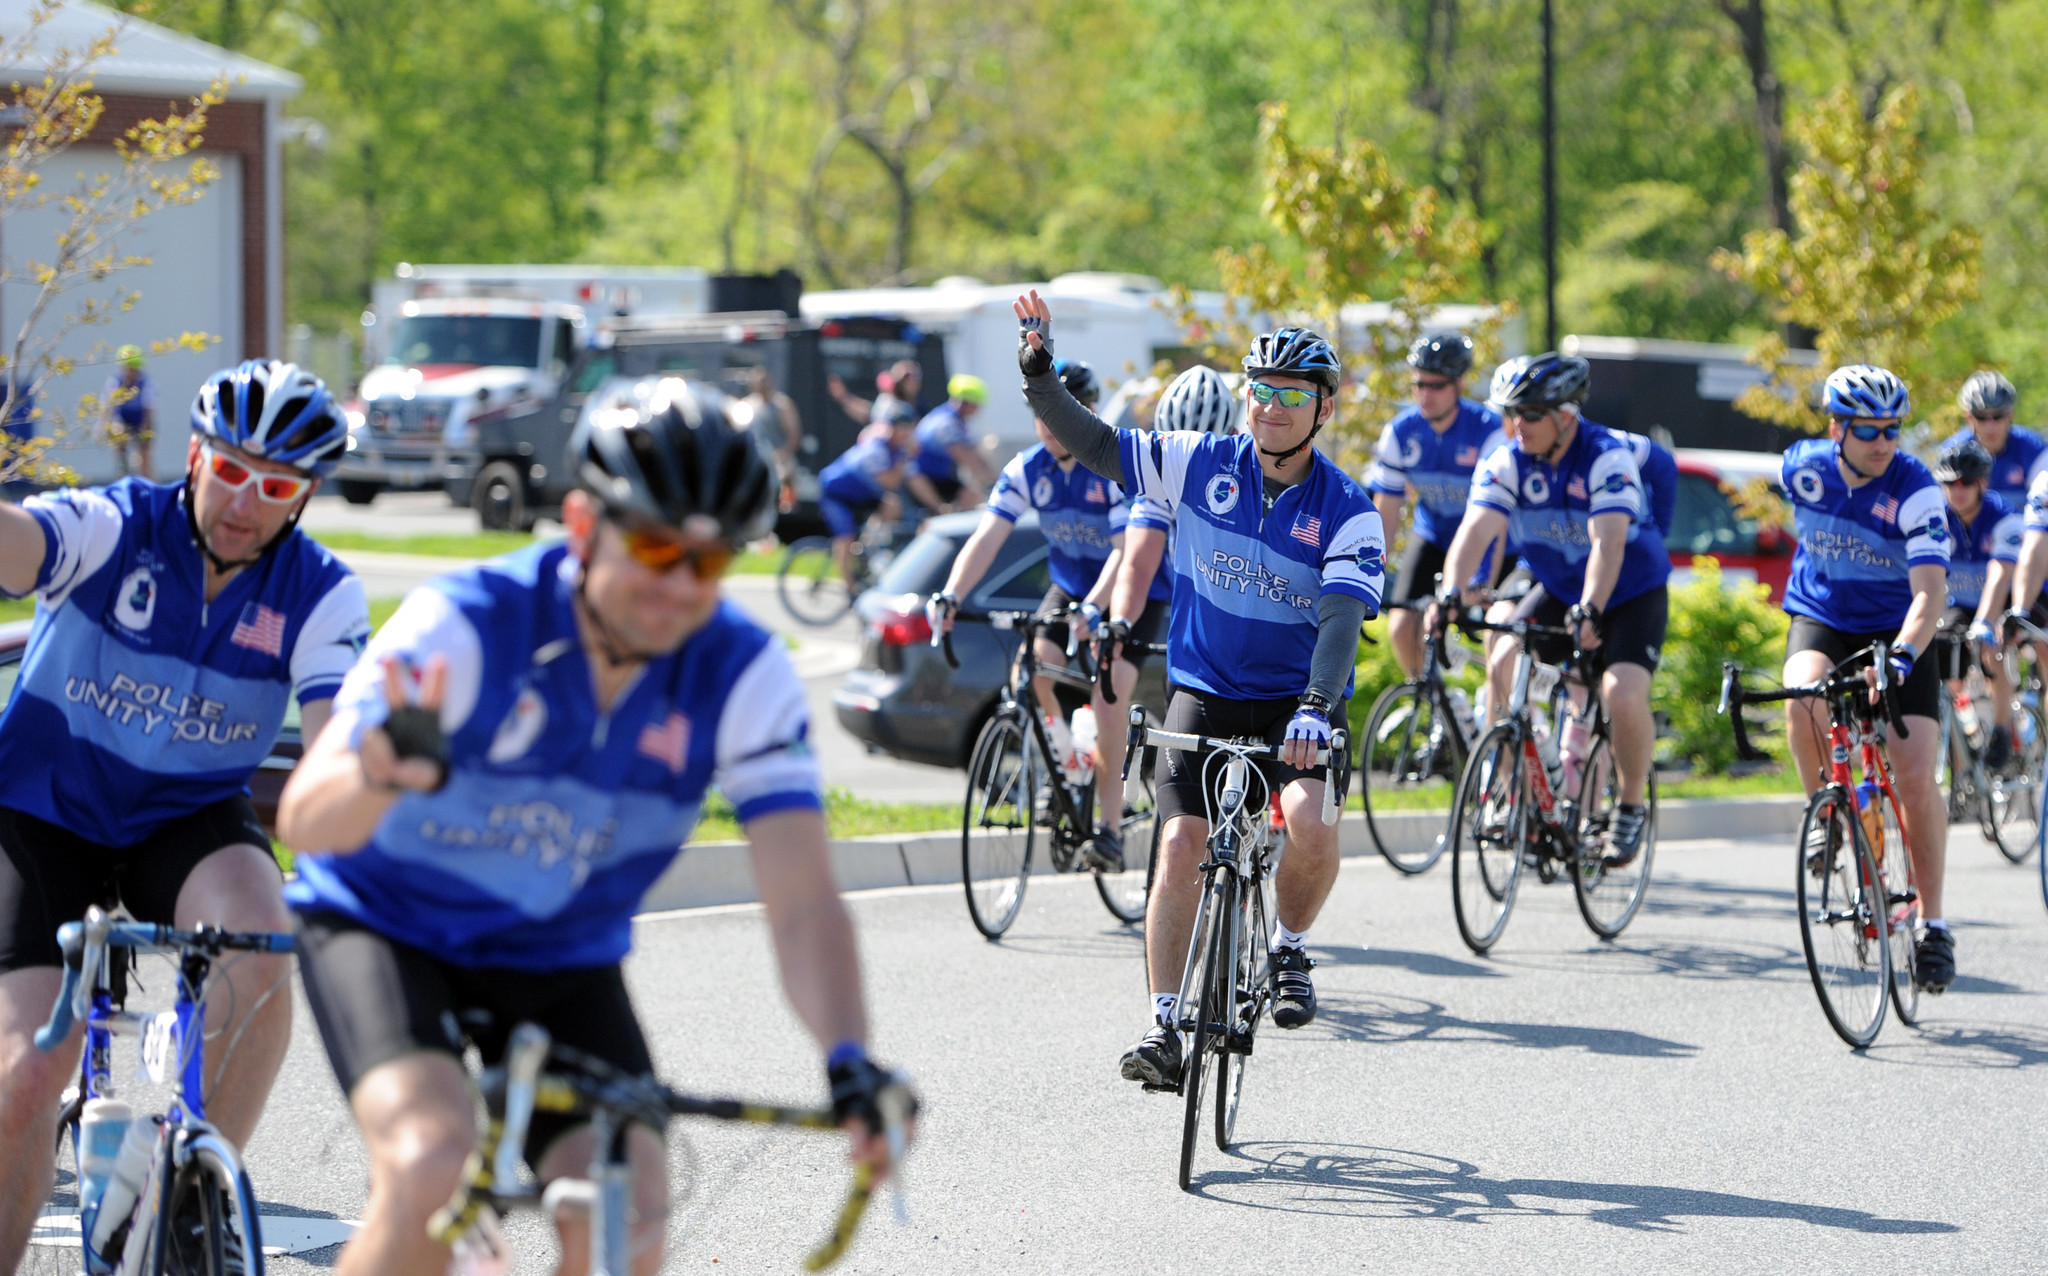 Police unity tour pictures baltimore sun for Police tours